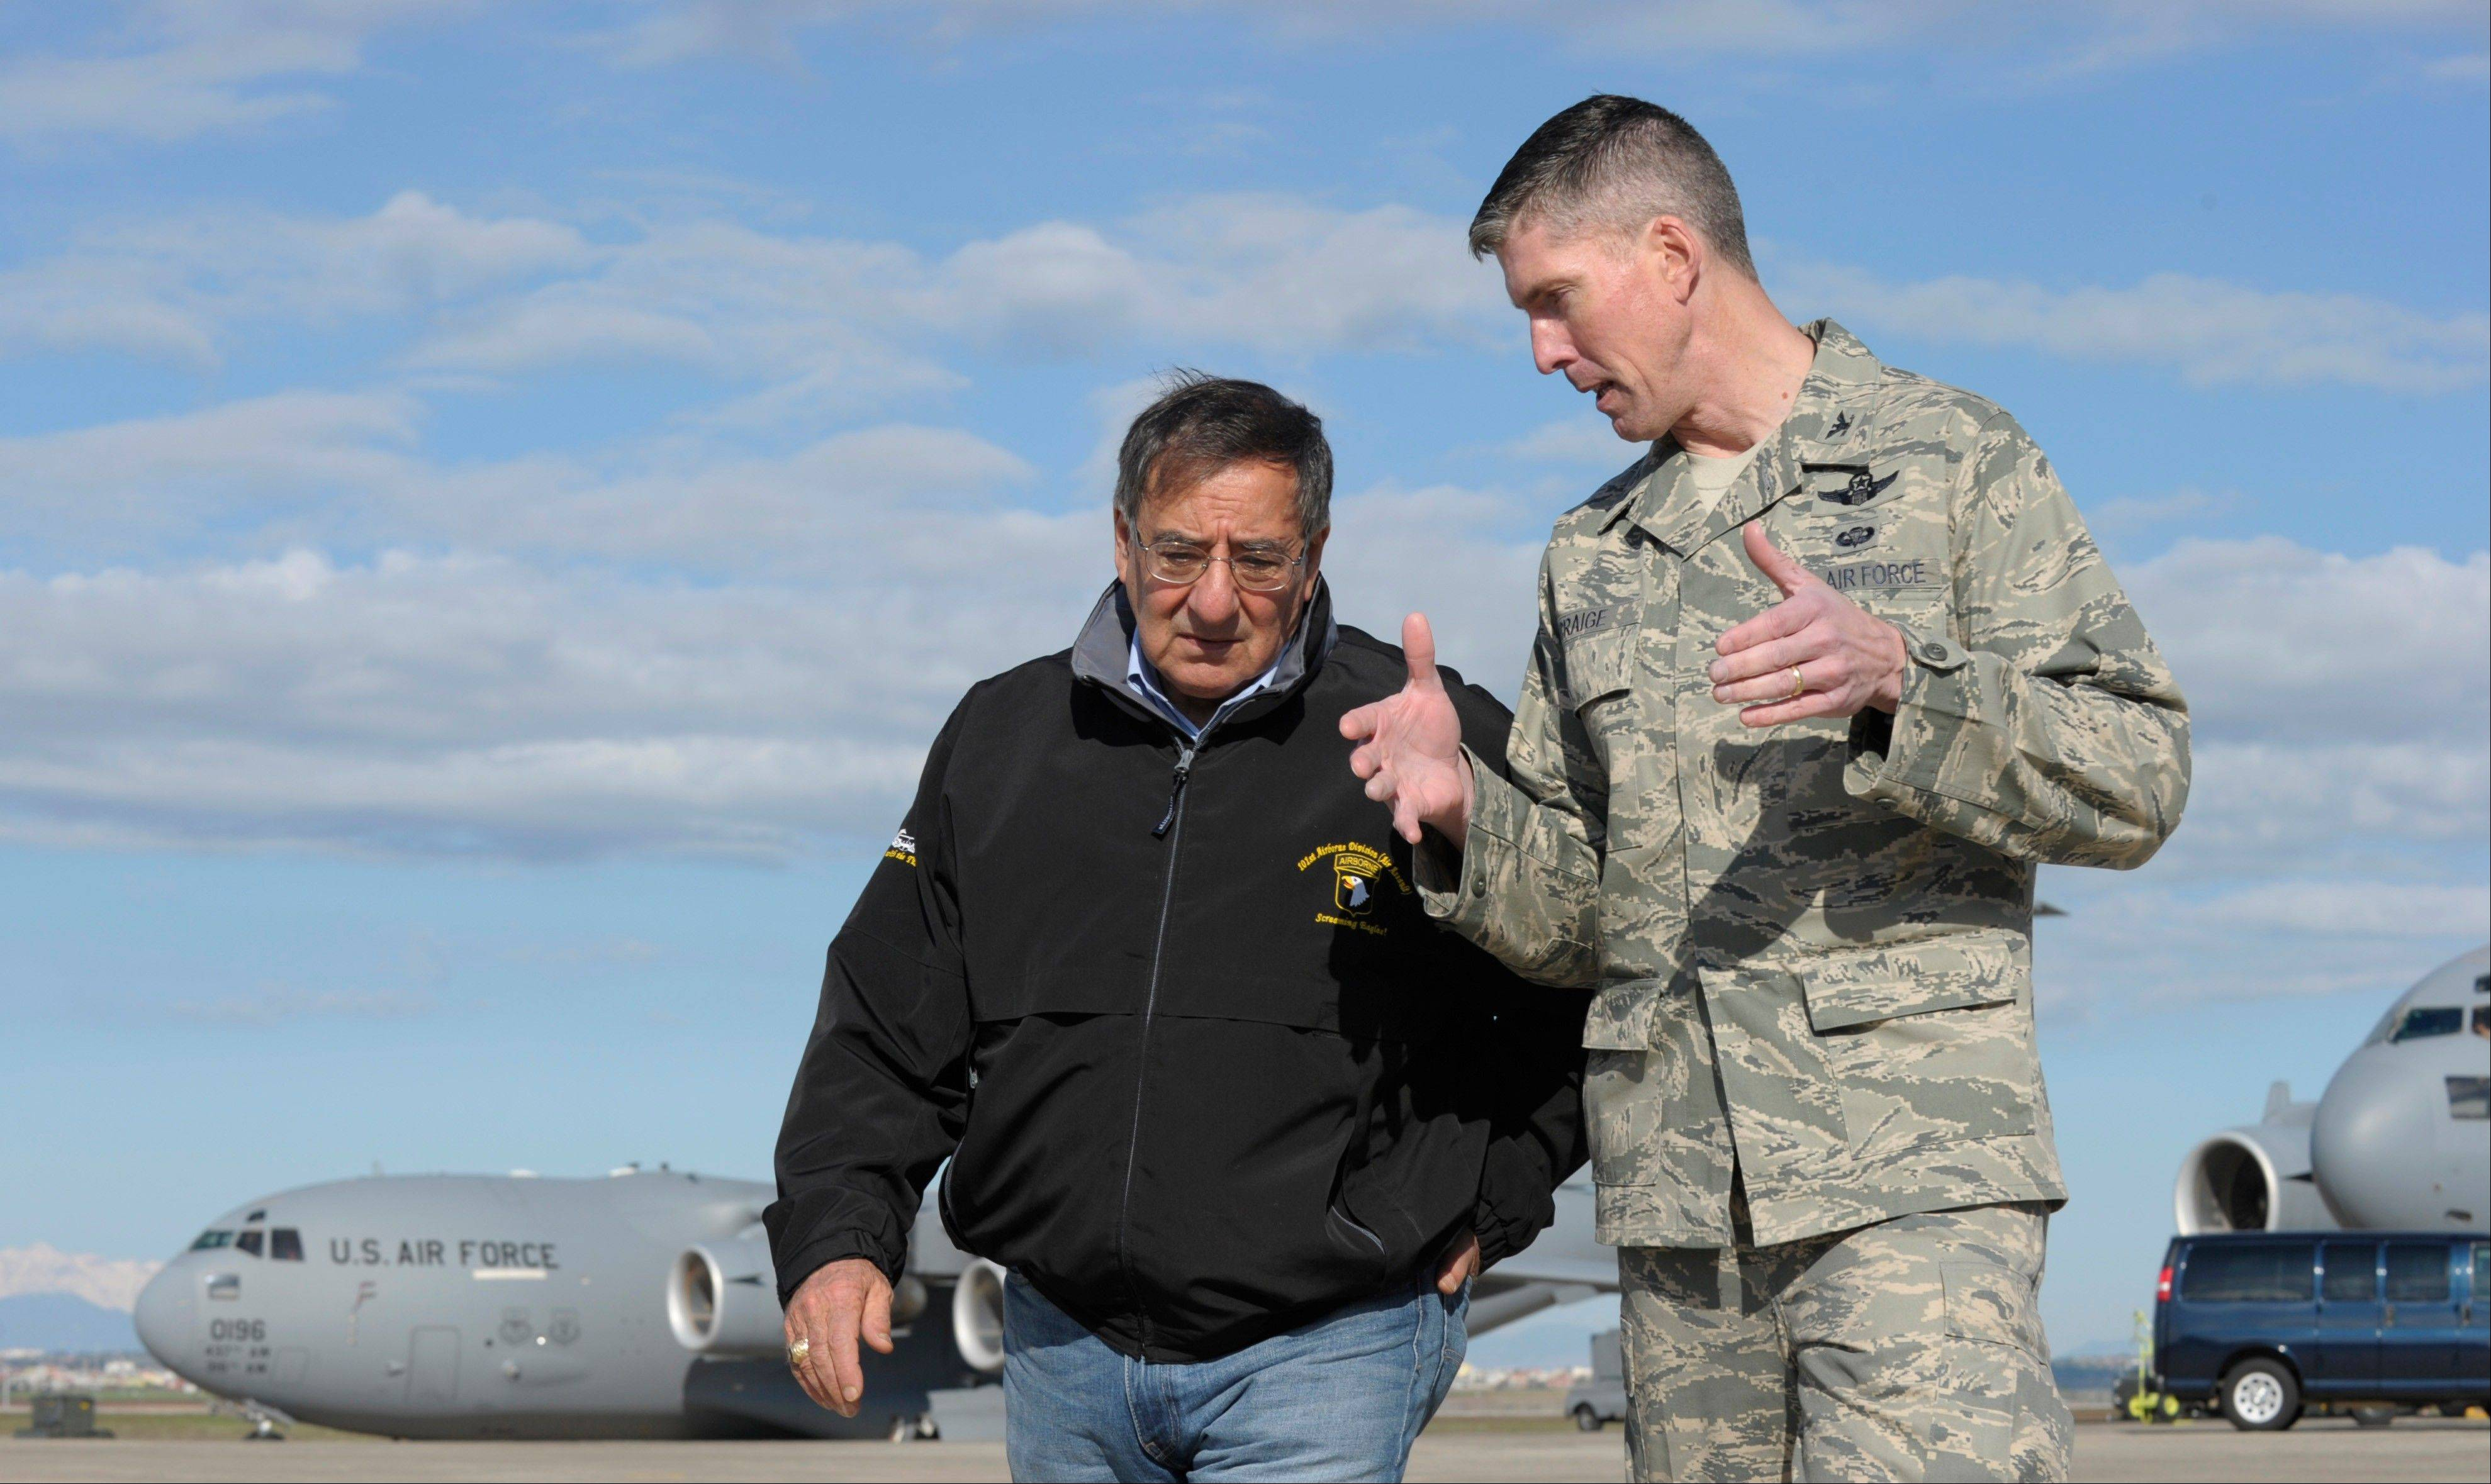 Defense Secretary Leon Panetta, left, talks with Col. Christopher E. Craige, Commander of the 39th Air Base Wing at Incirlik Air Base, Turkey, Friday, Dec. 14, 2012. Panetta stopped to visit troops in Turkey before heading home after spending three days in Afghanistan.